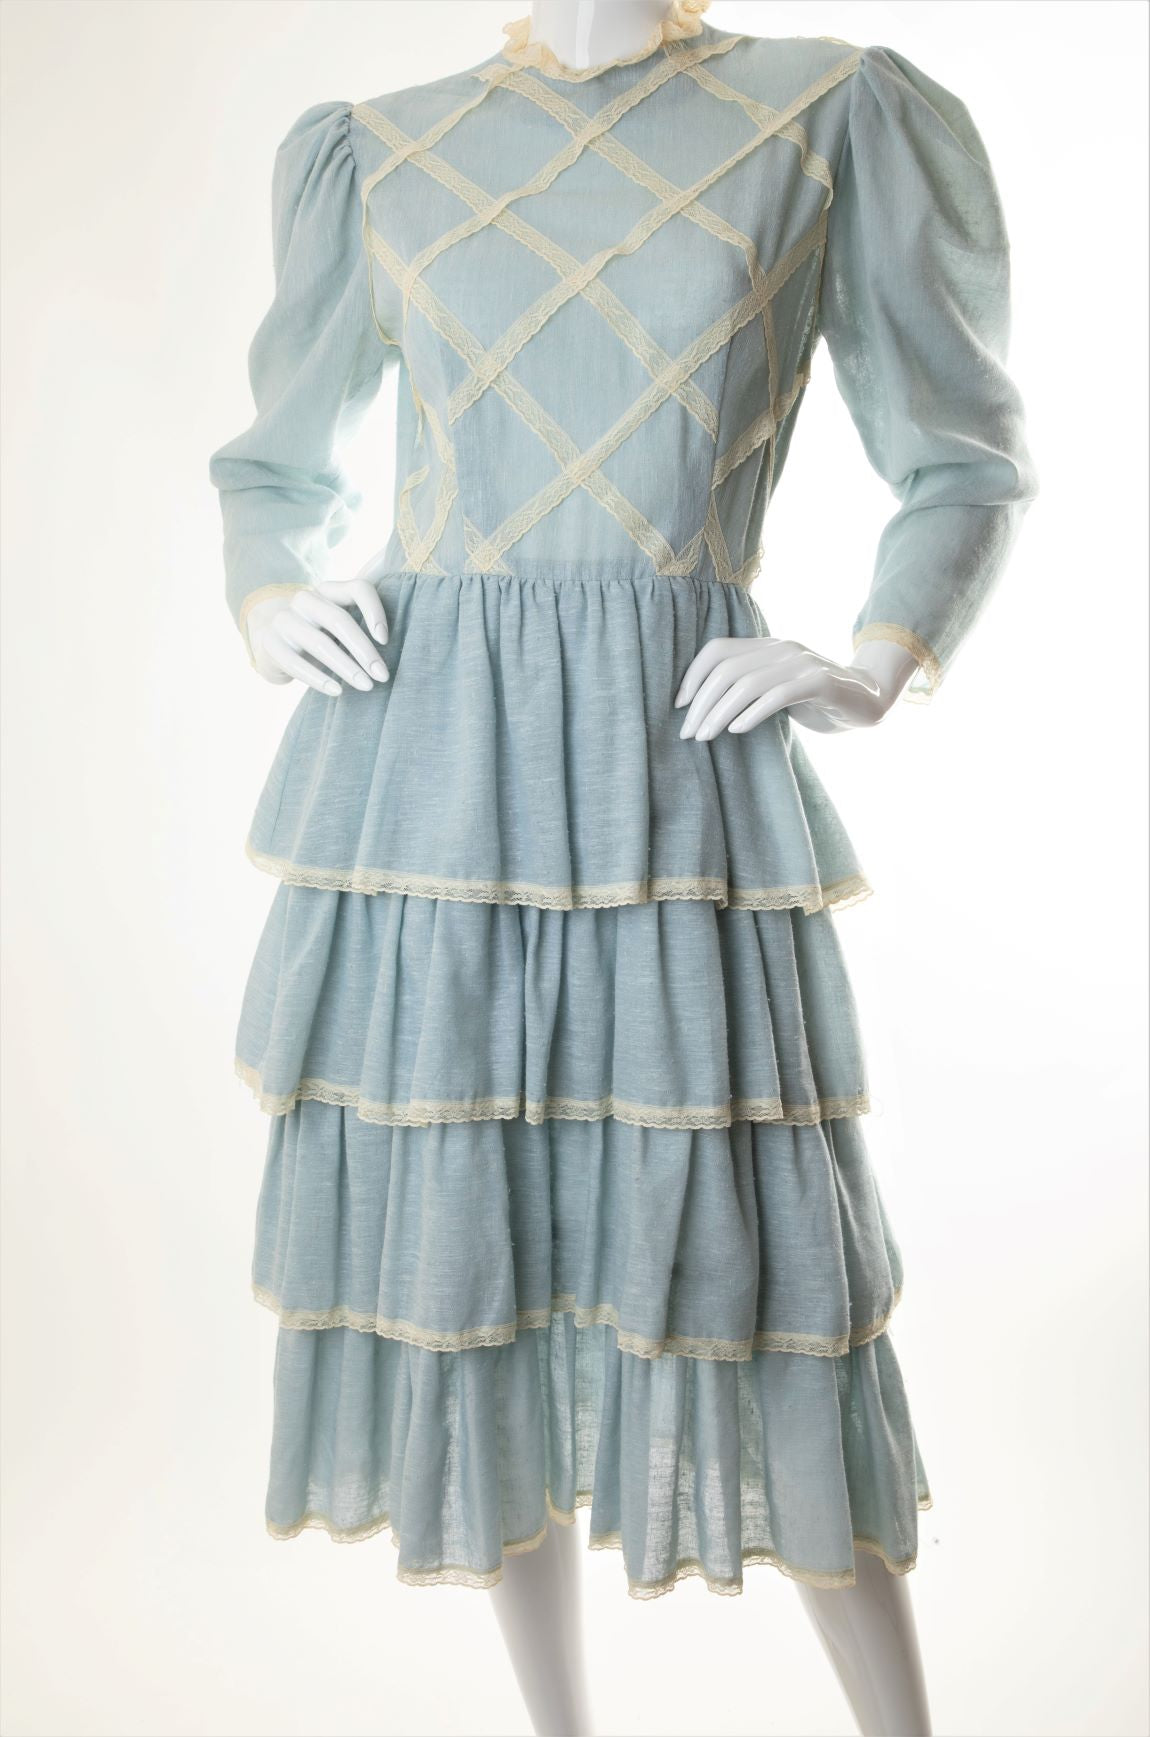 Vintage - Tiered Ruffled Dress with Lace Lattice Trim